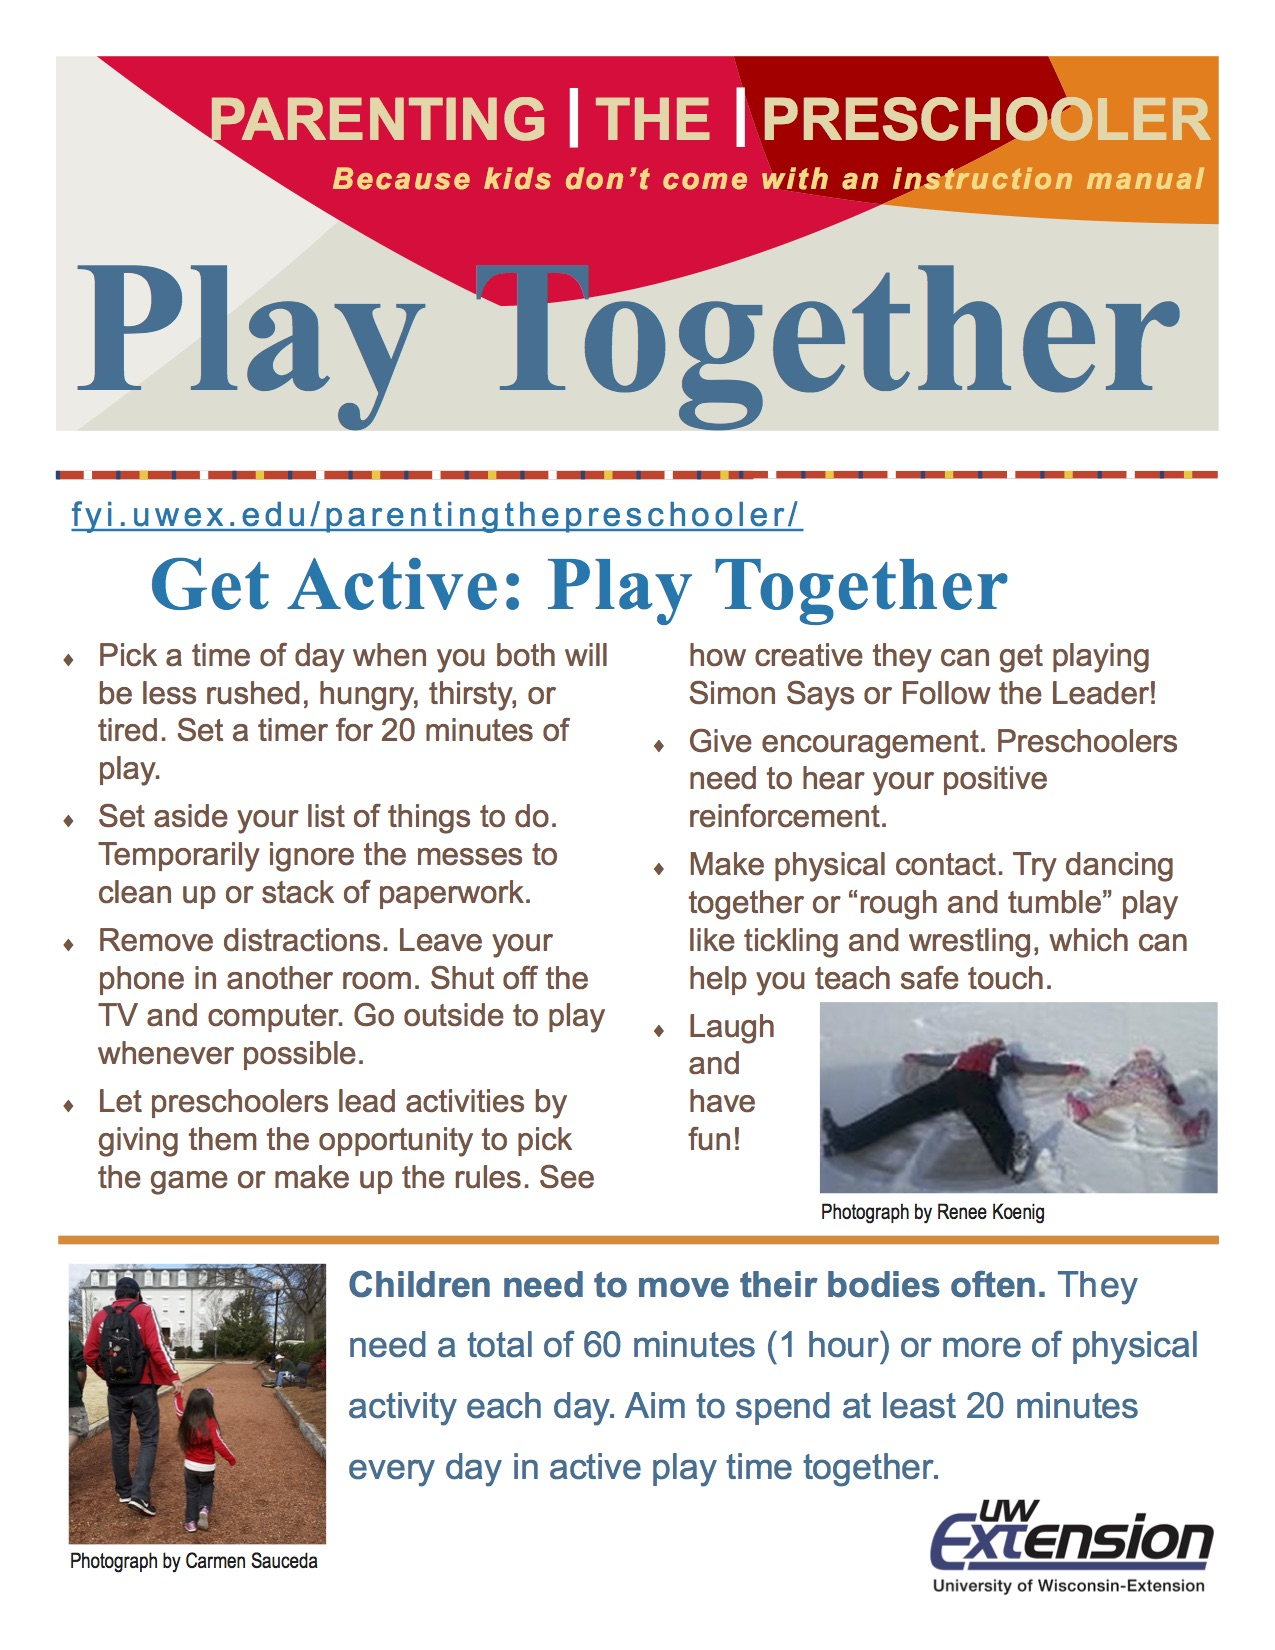 PtP-Play-Together-State